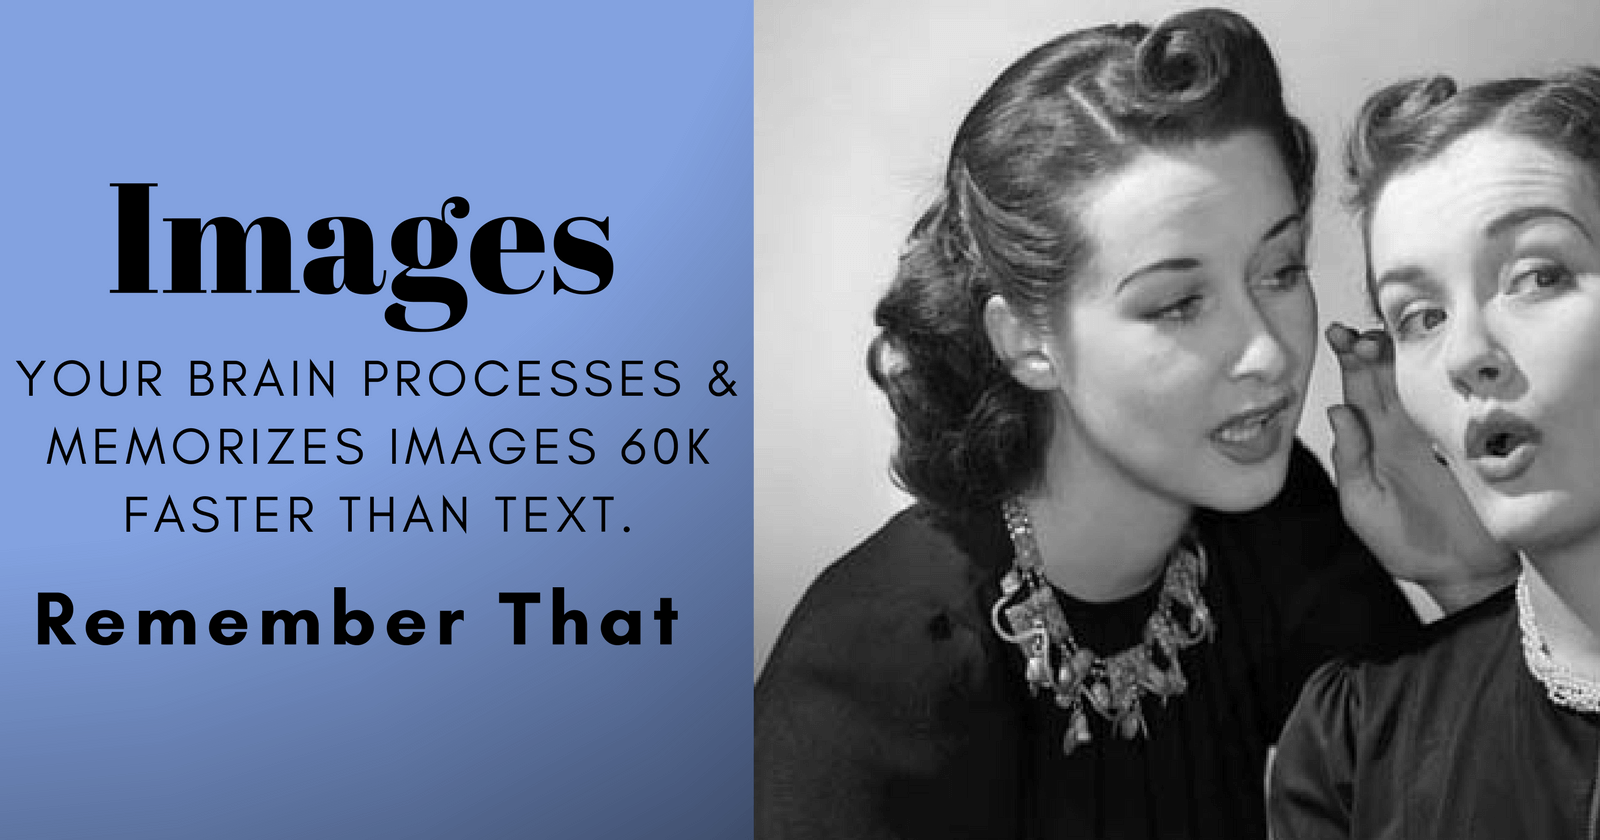 using images in social media